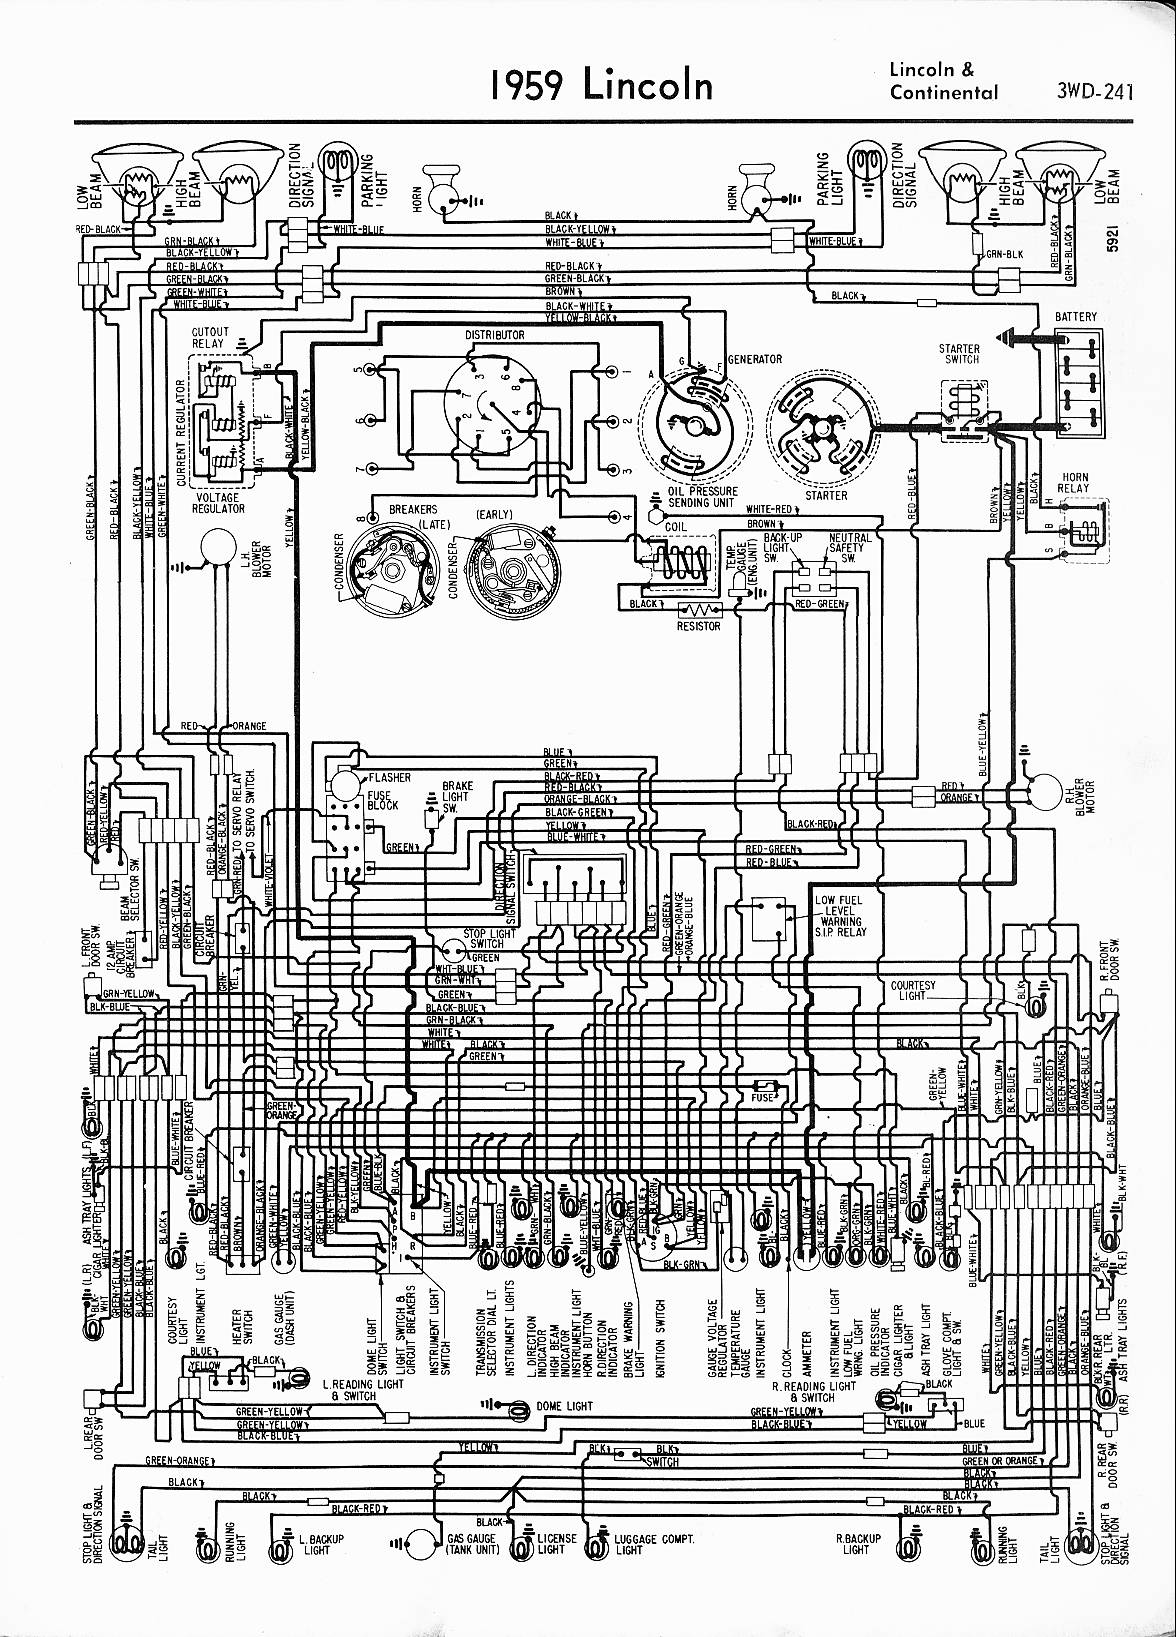 67 lincoln wiring diagrams wiring diagram third level1965 lincoln wiring diagrams automotive wiring diagrams 1960 lincoln wiring diagram 67 lincoln wiring diagrams